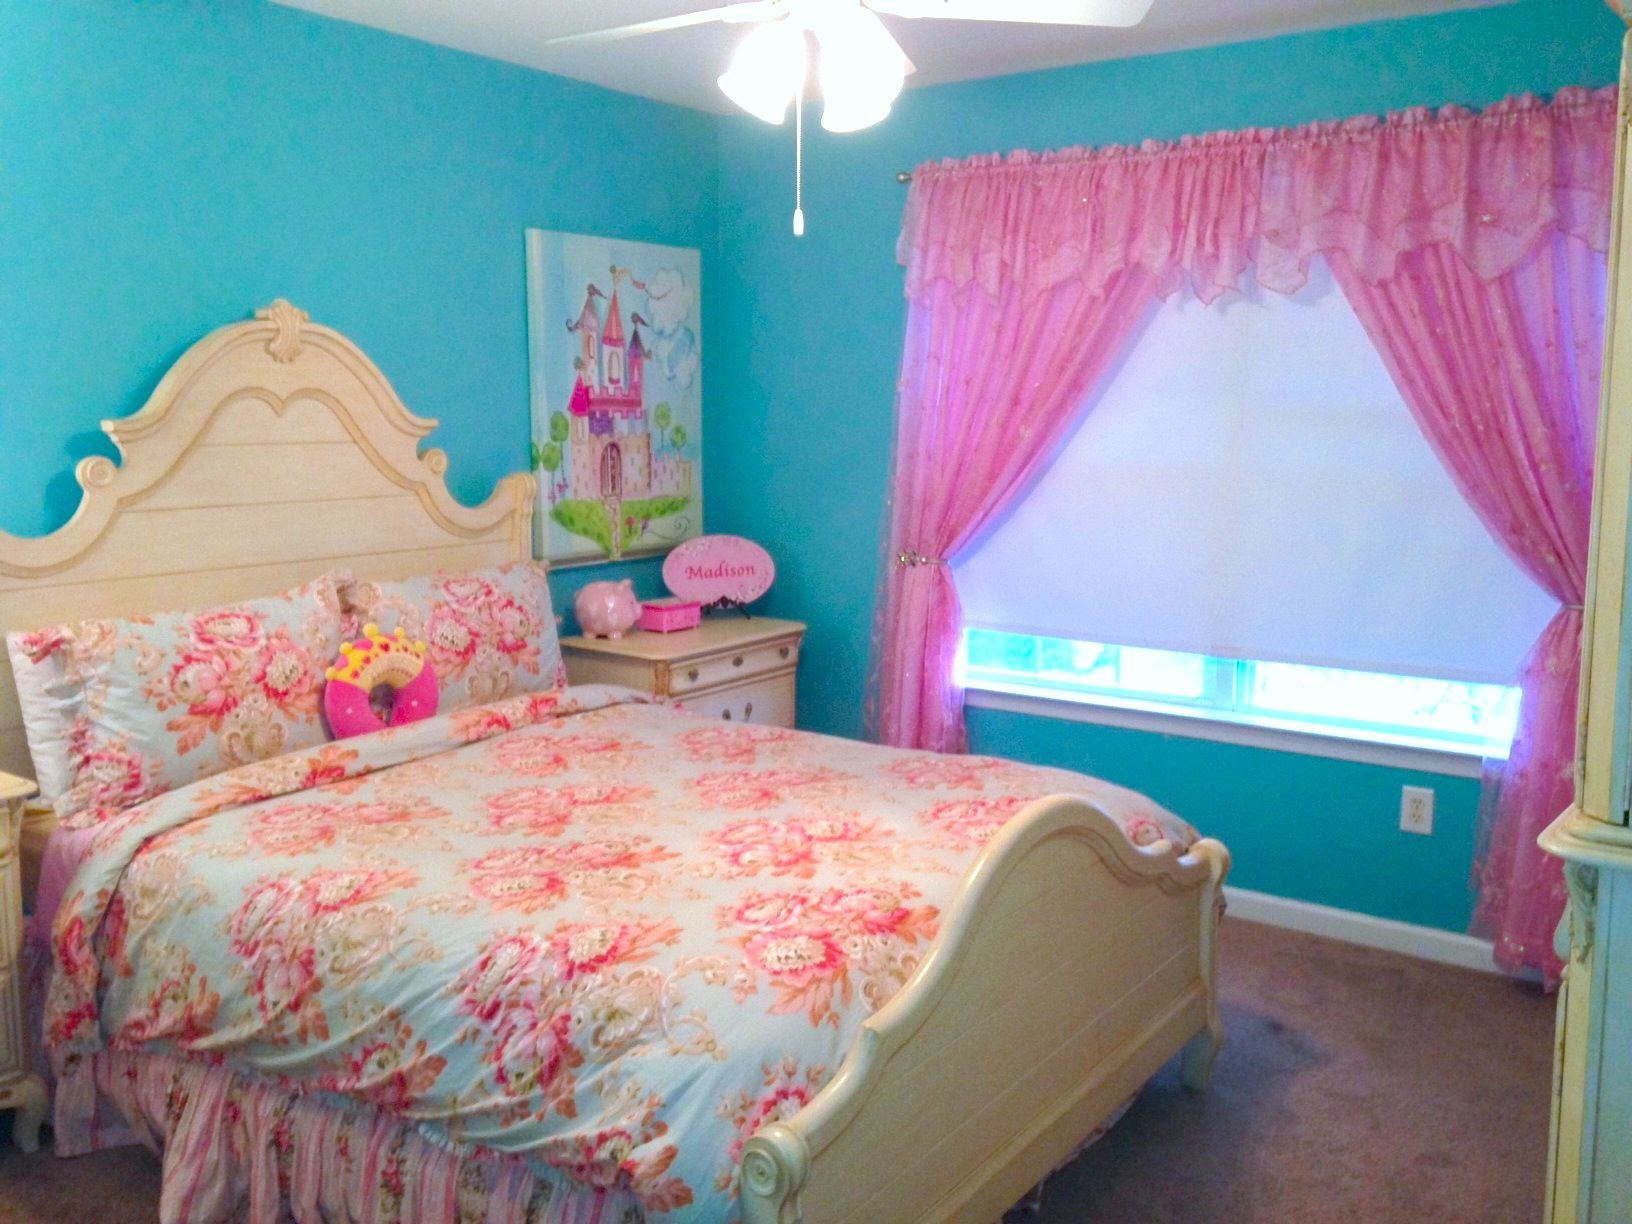 Adorable Princess Themed Little Girls Room Compliments Of My 5 Year